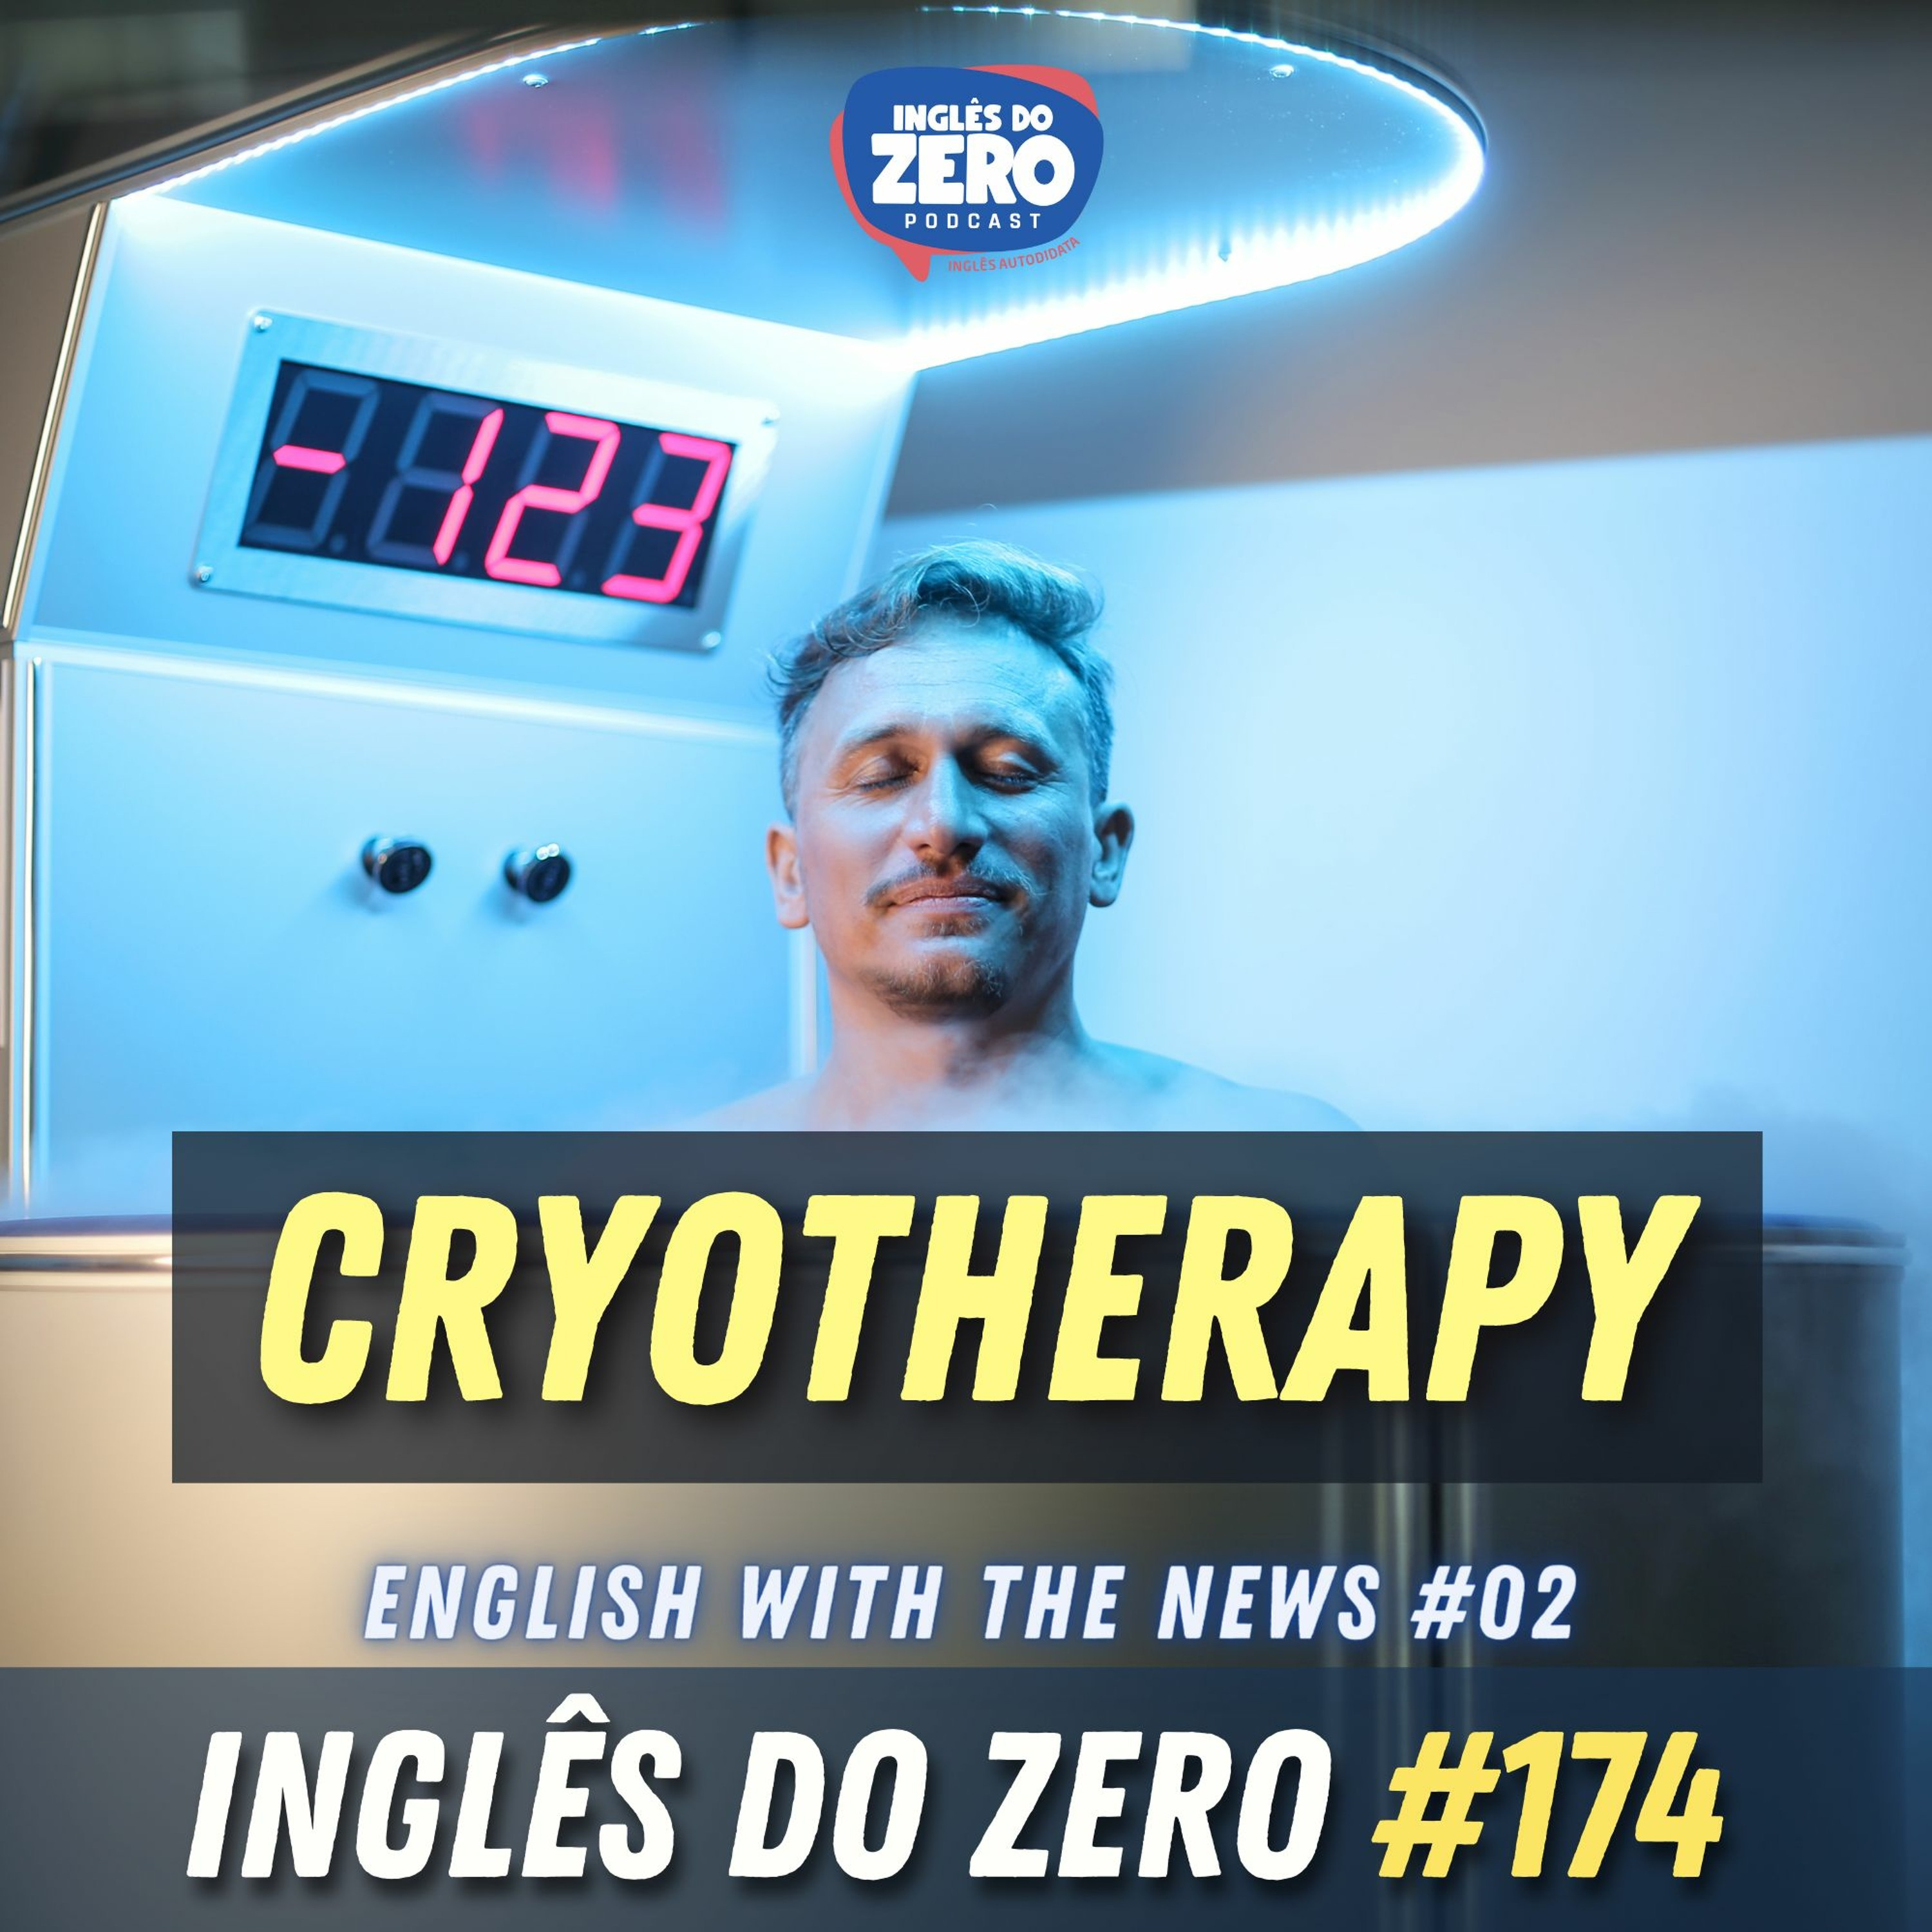 IDZ #174 - CRYOTHERAPY | English with the News - 02